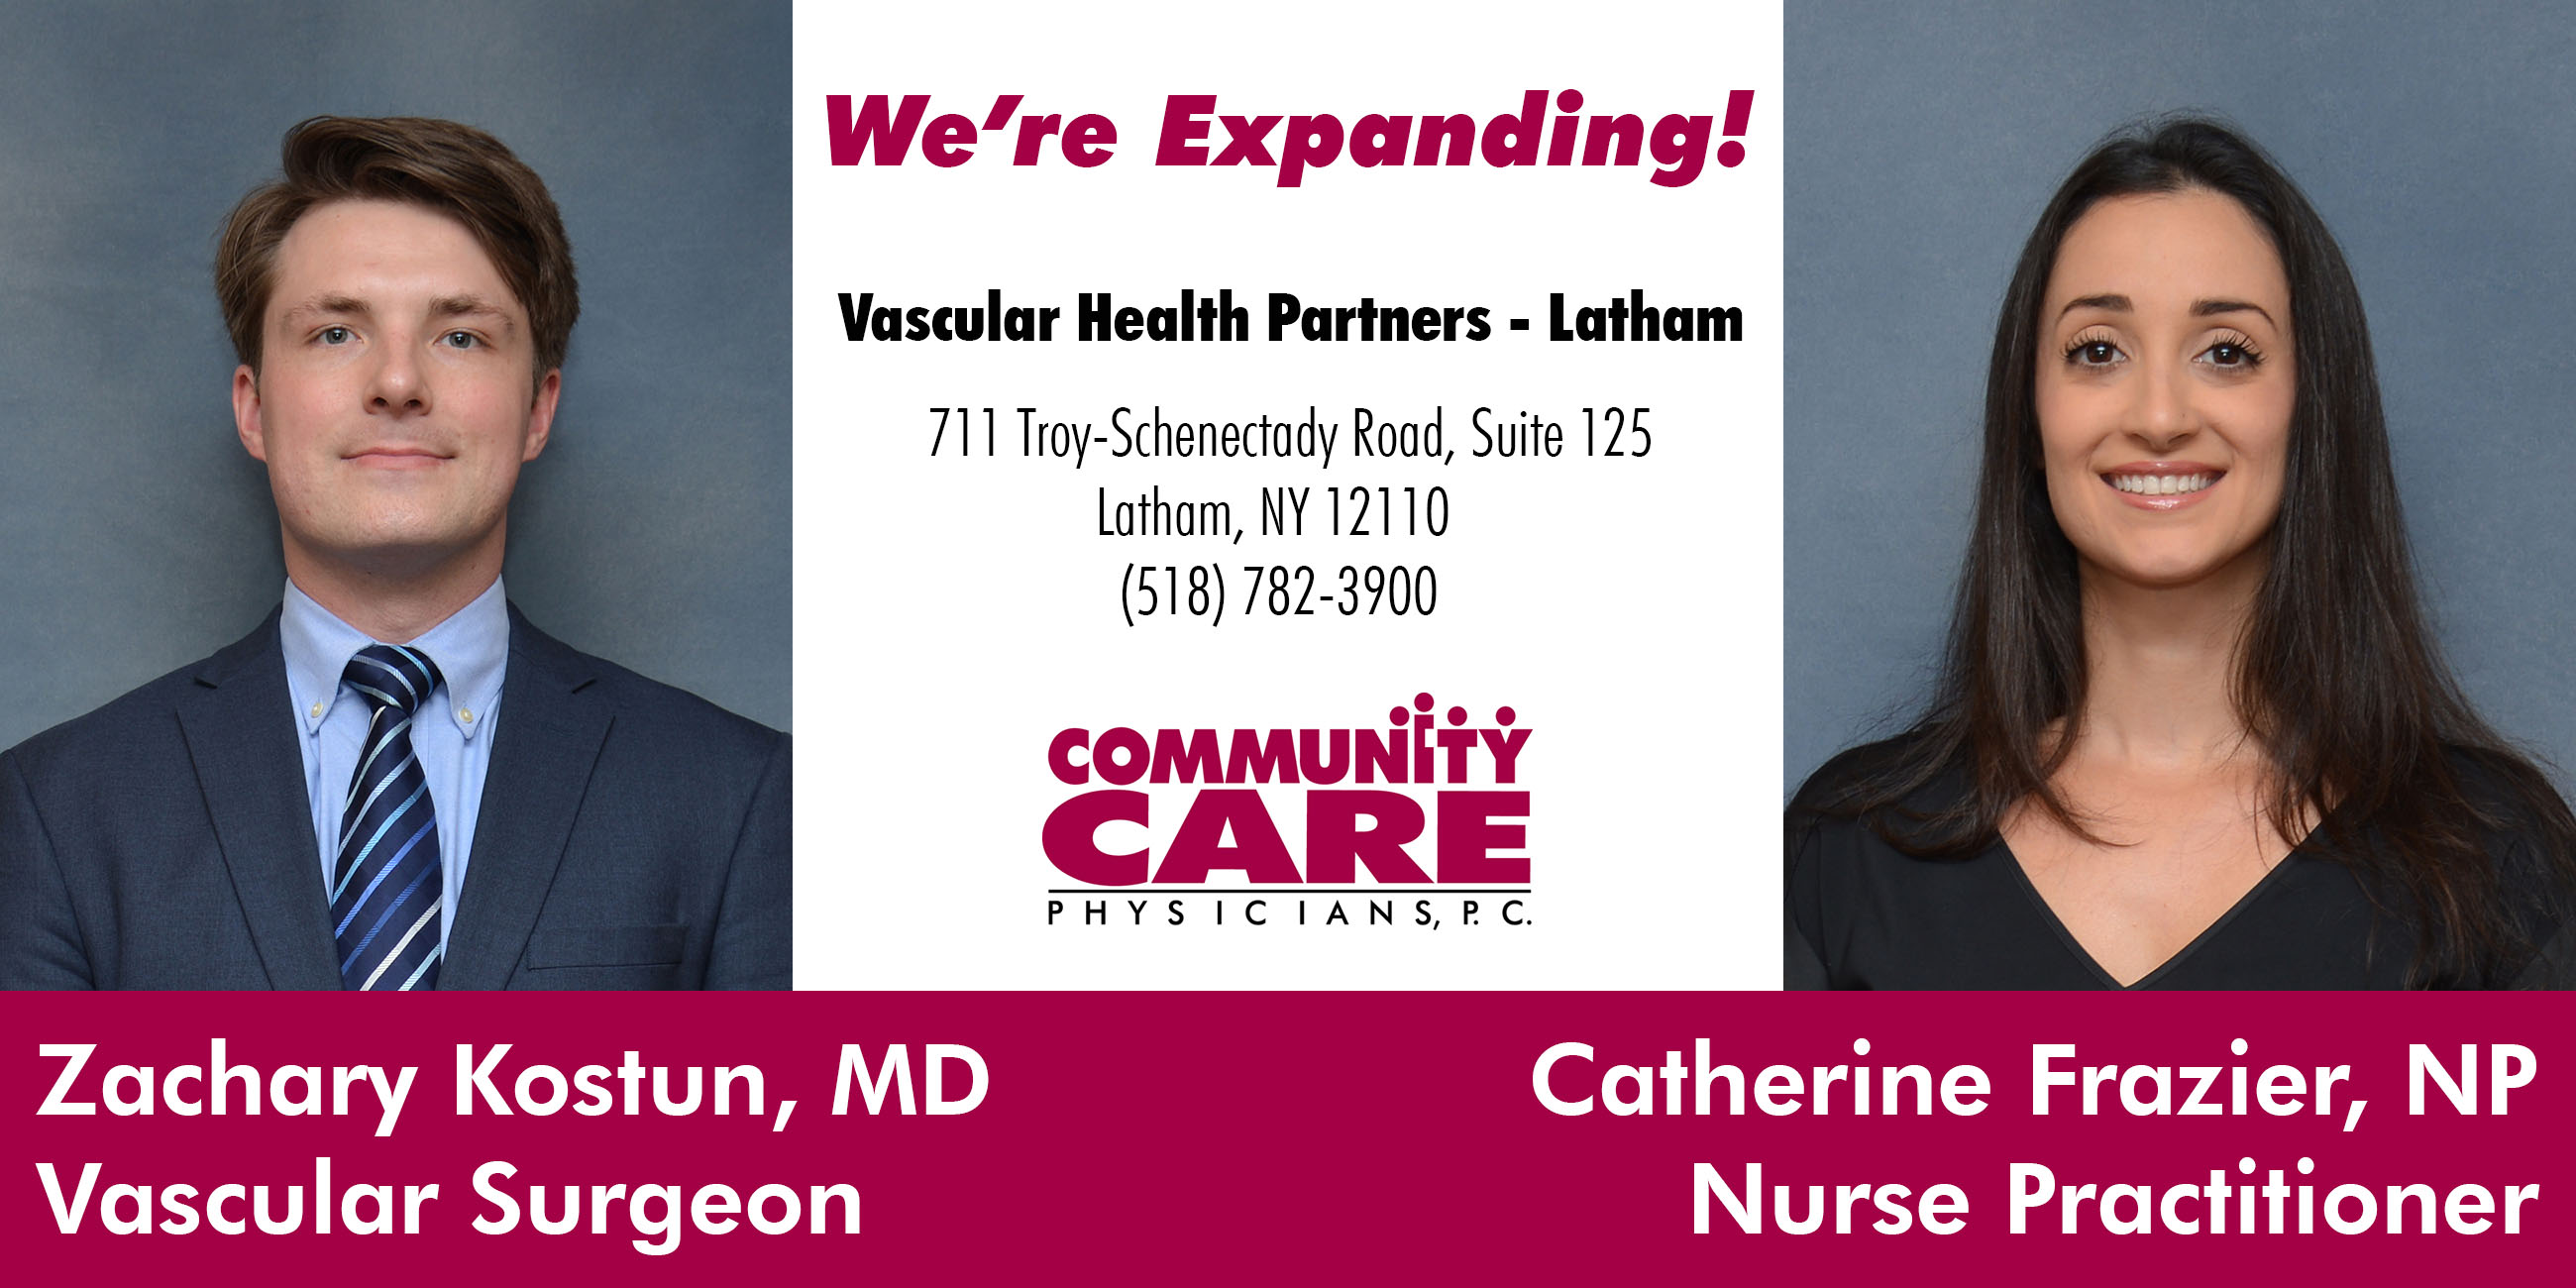 Vascular Health Partners Opening in Latham July 10th